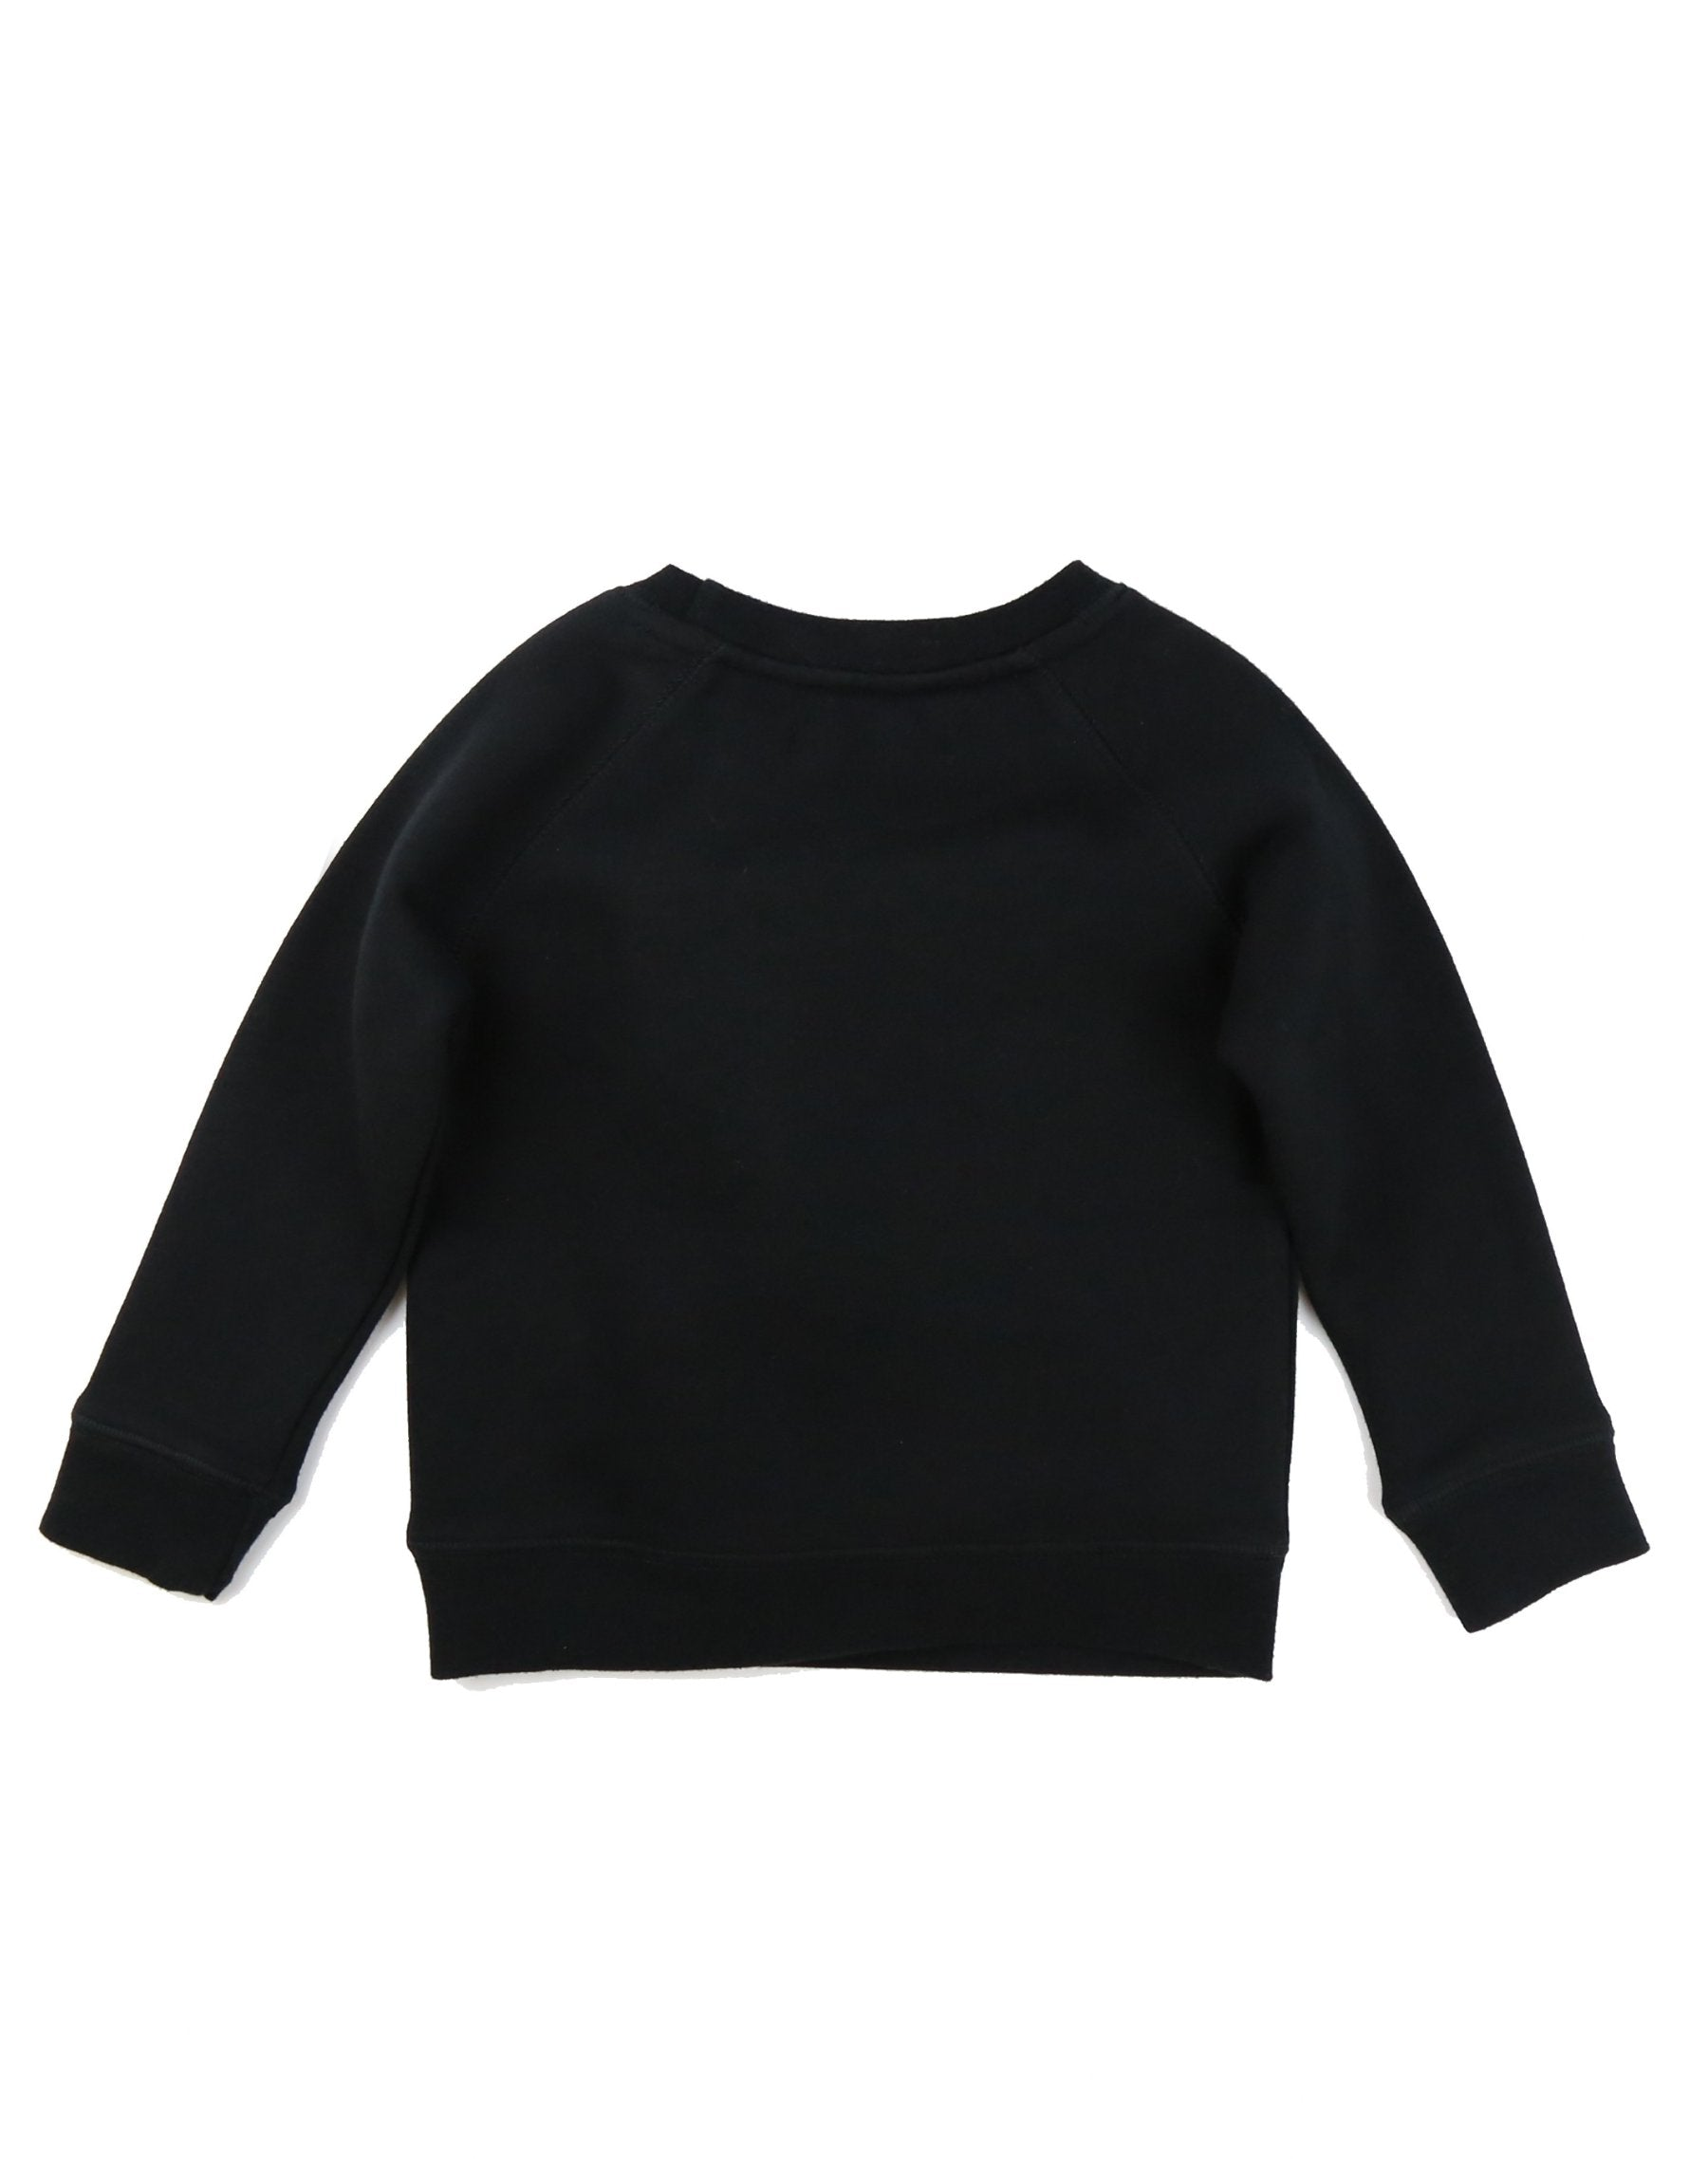 Photo of the back of the Brunette Little Babes classic crew neck sweatshirt in black by Brunette the Label.